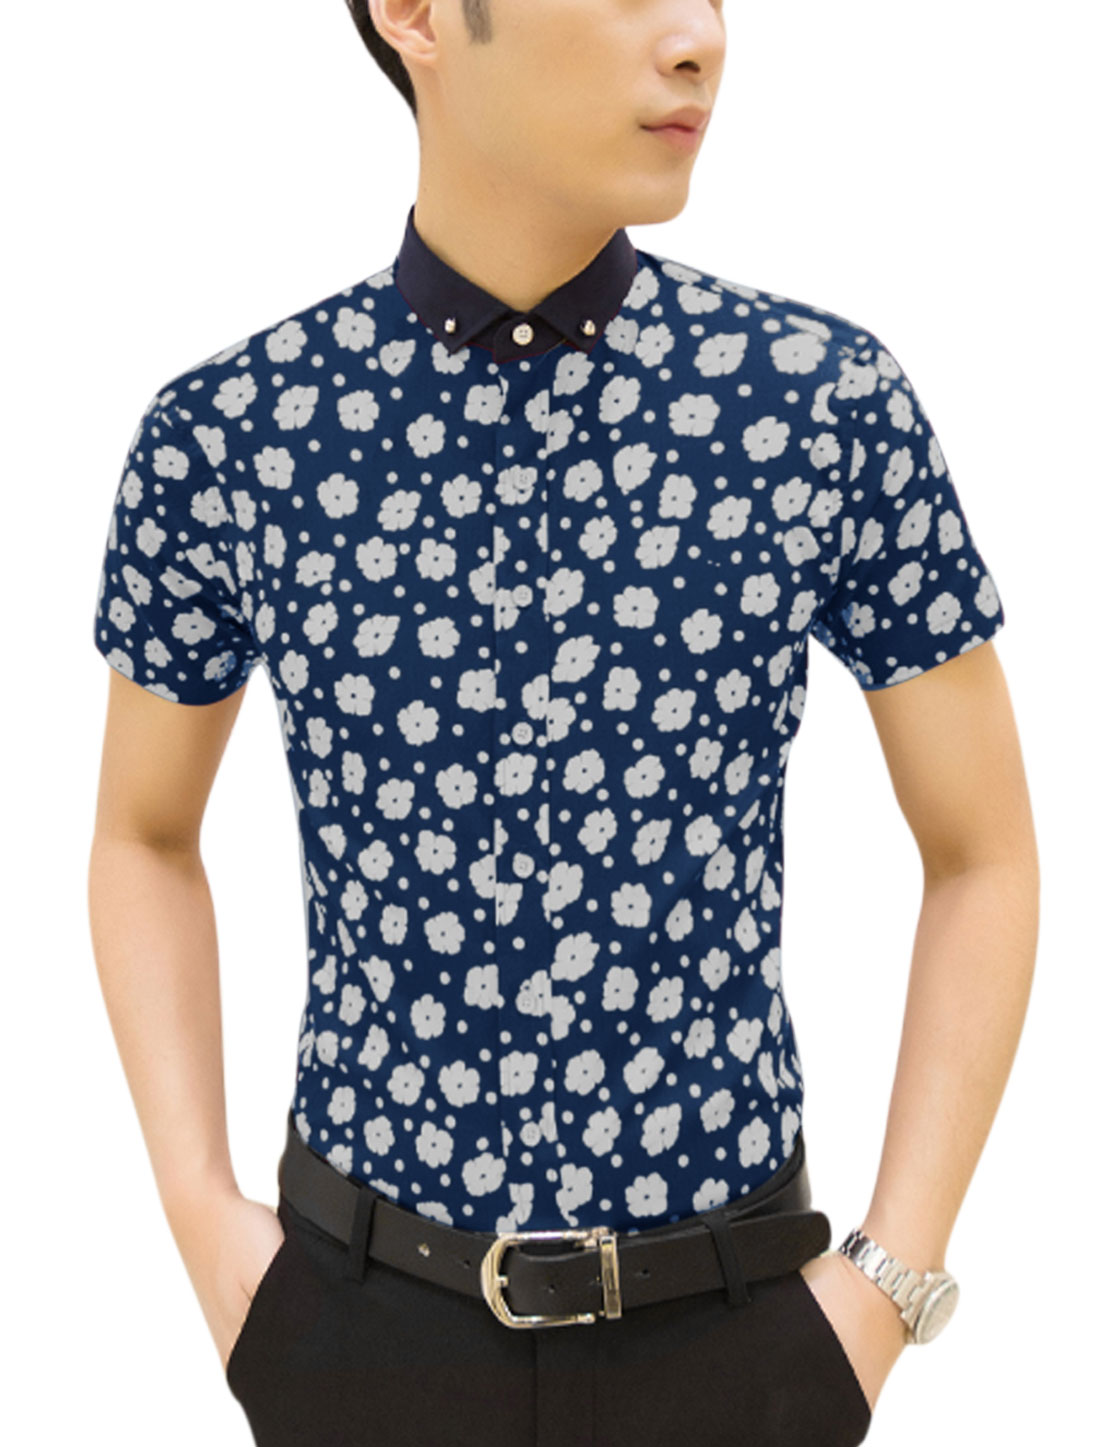 Men Floral Prints Contrast Color Point Collar Short Sleeves Shirt Navy Blue M